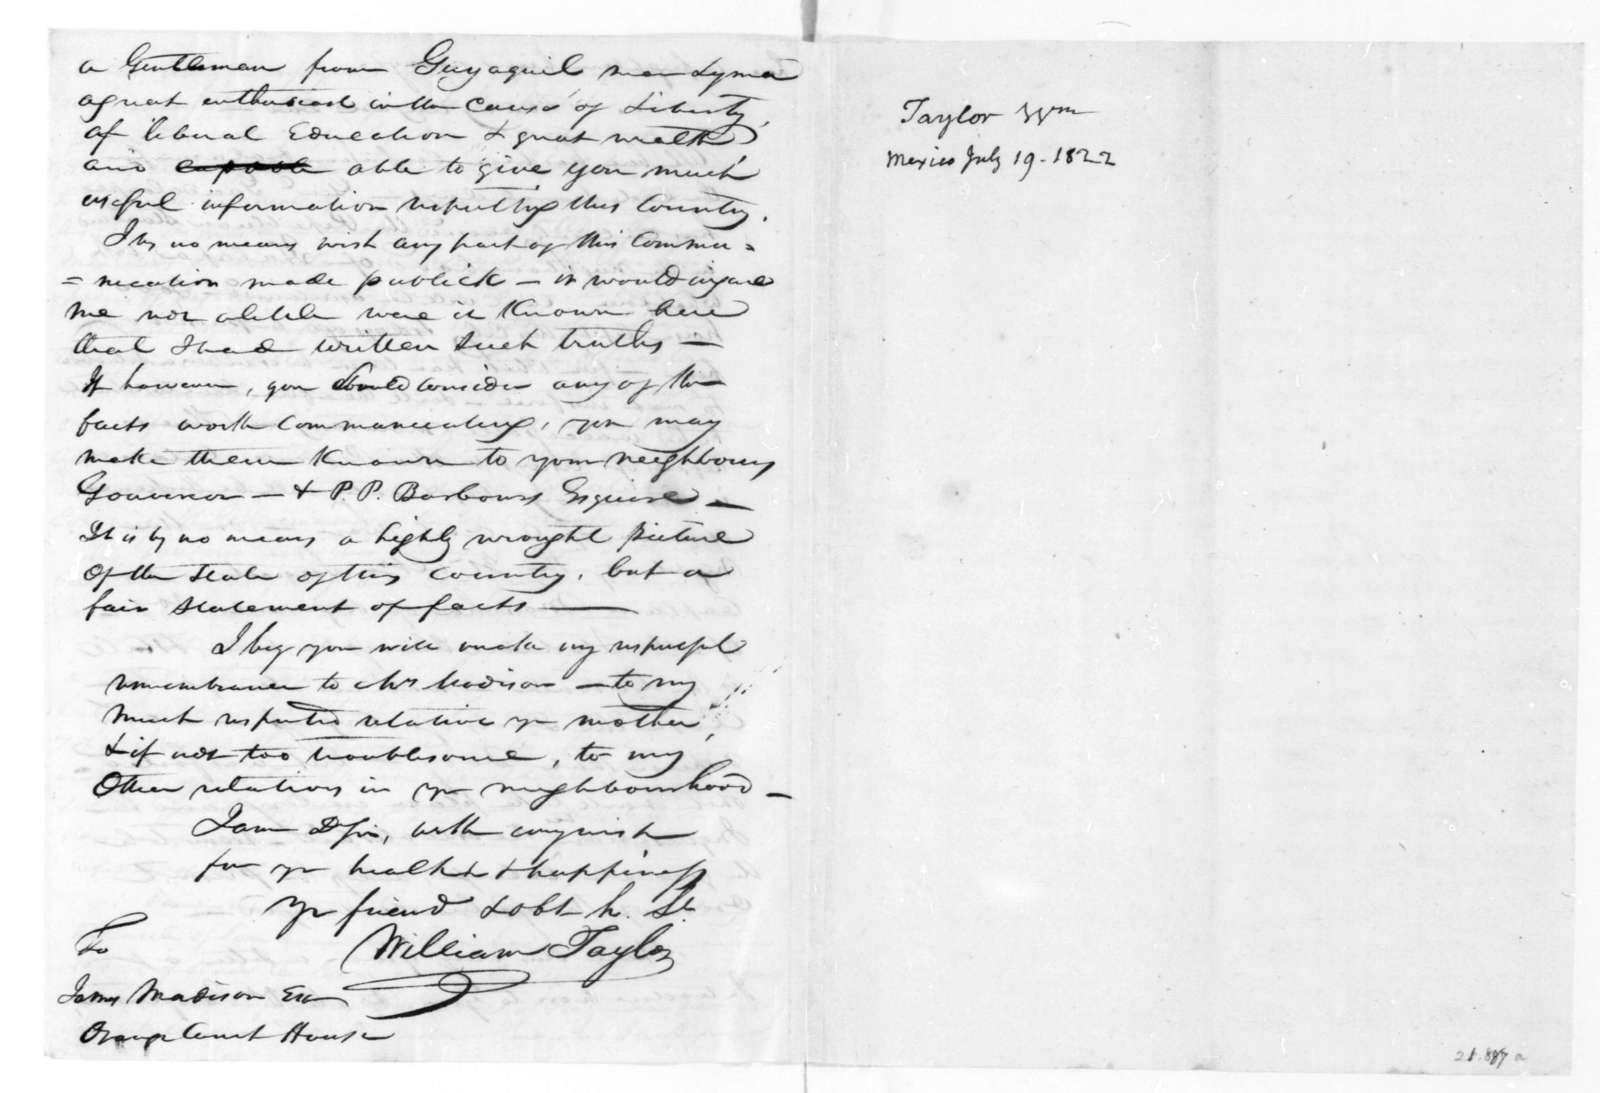 William Taylor to James Madison, July 19, 1822.